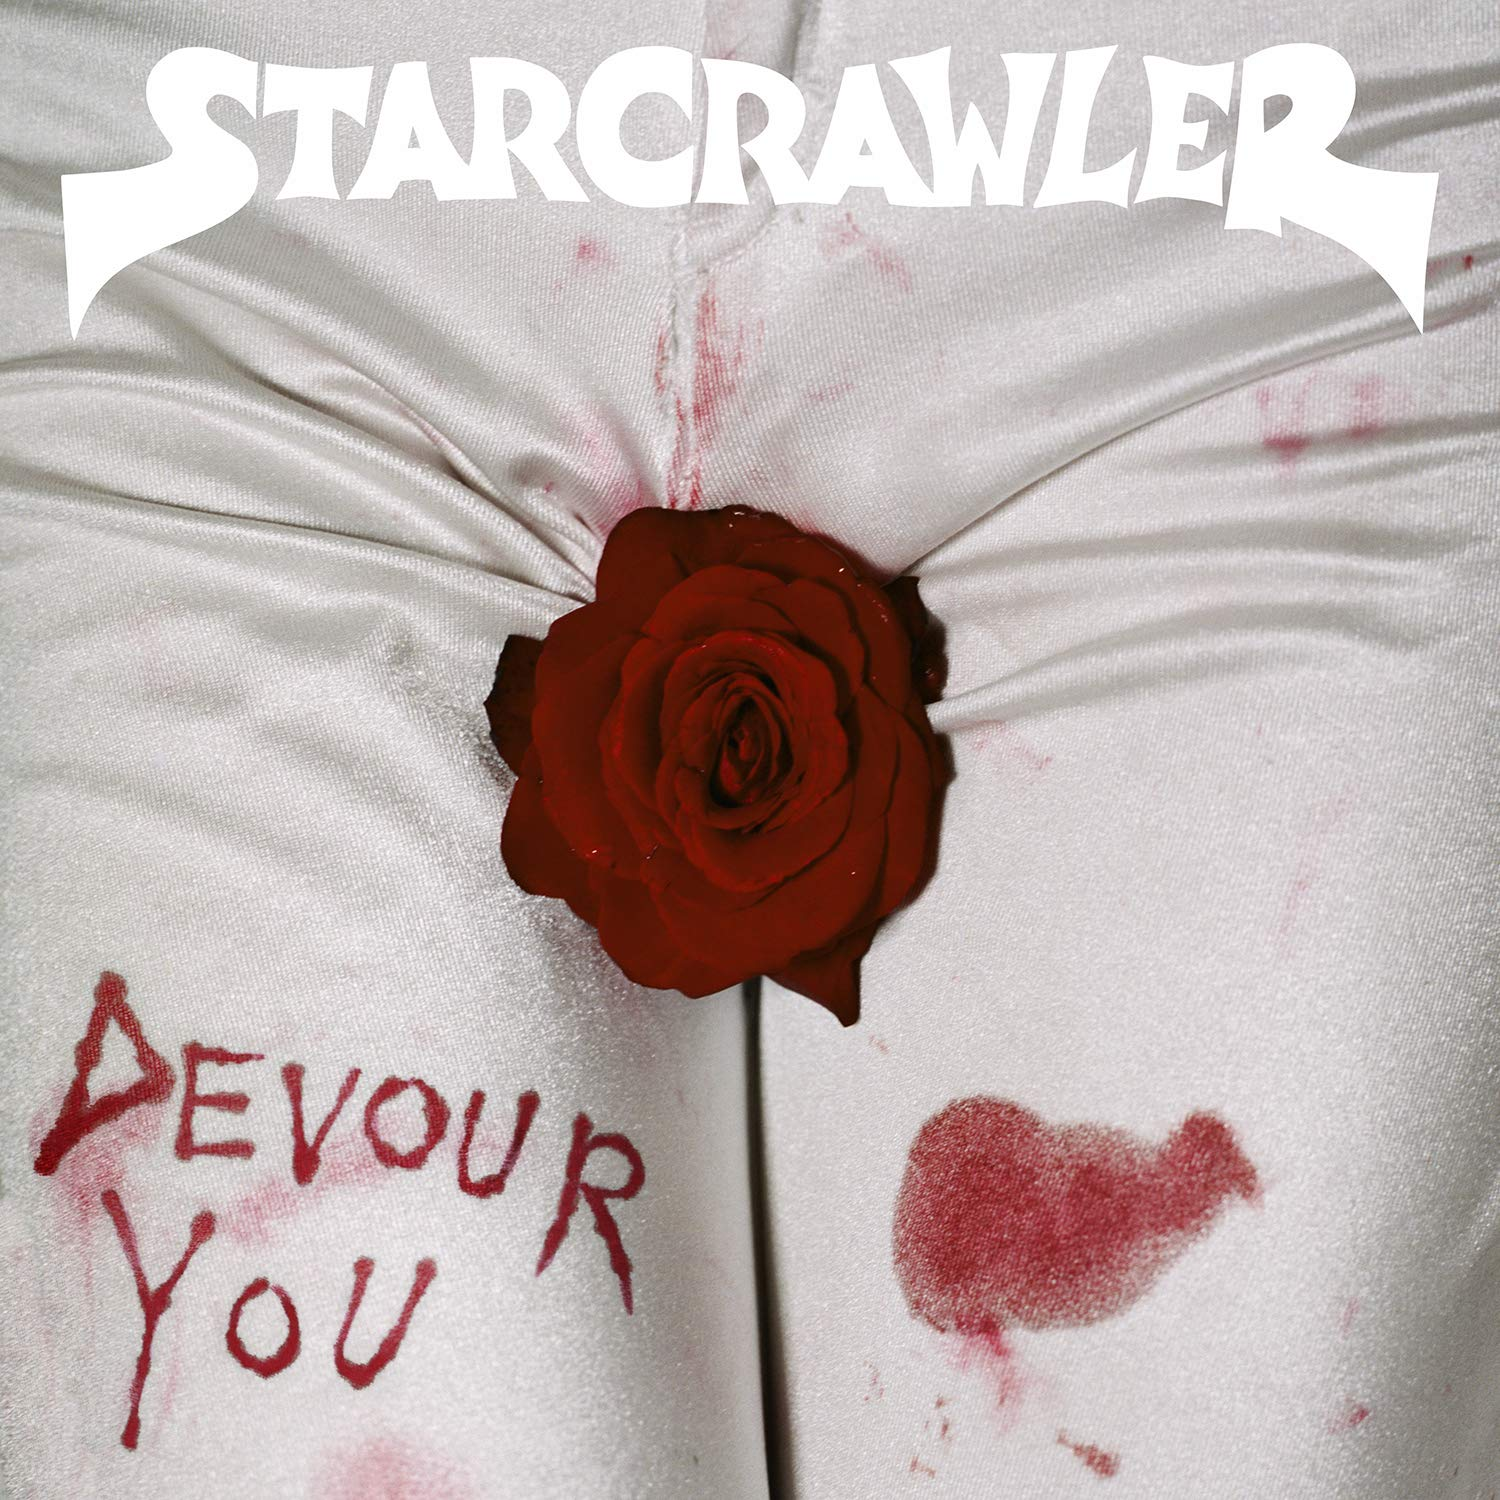 Starcrawler - Devour You [LP]